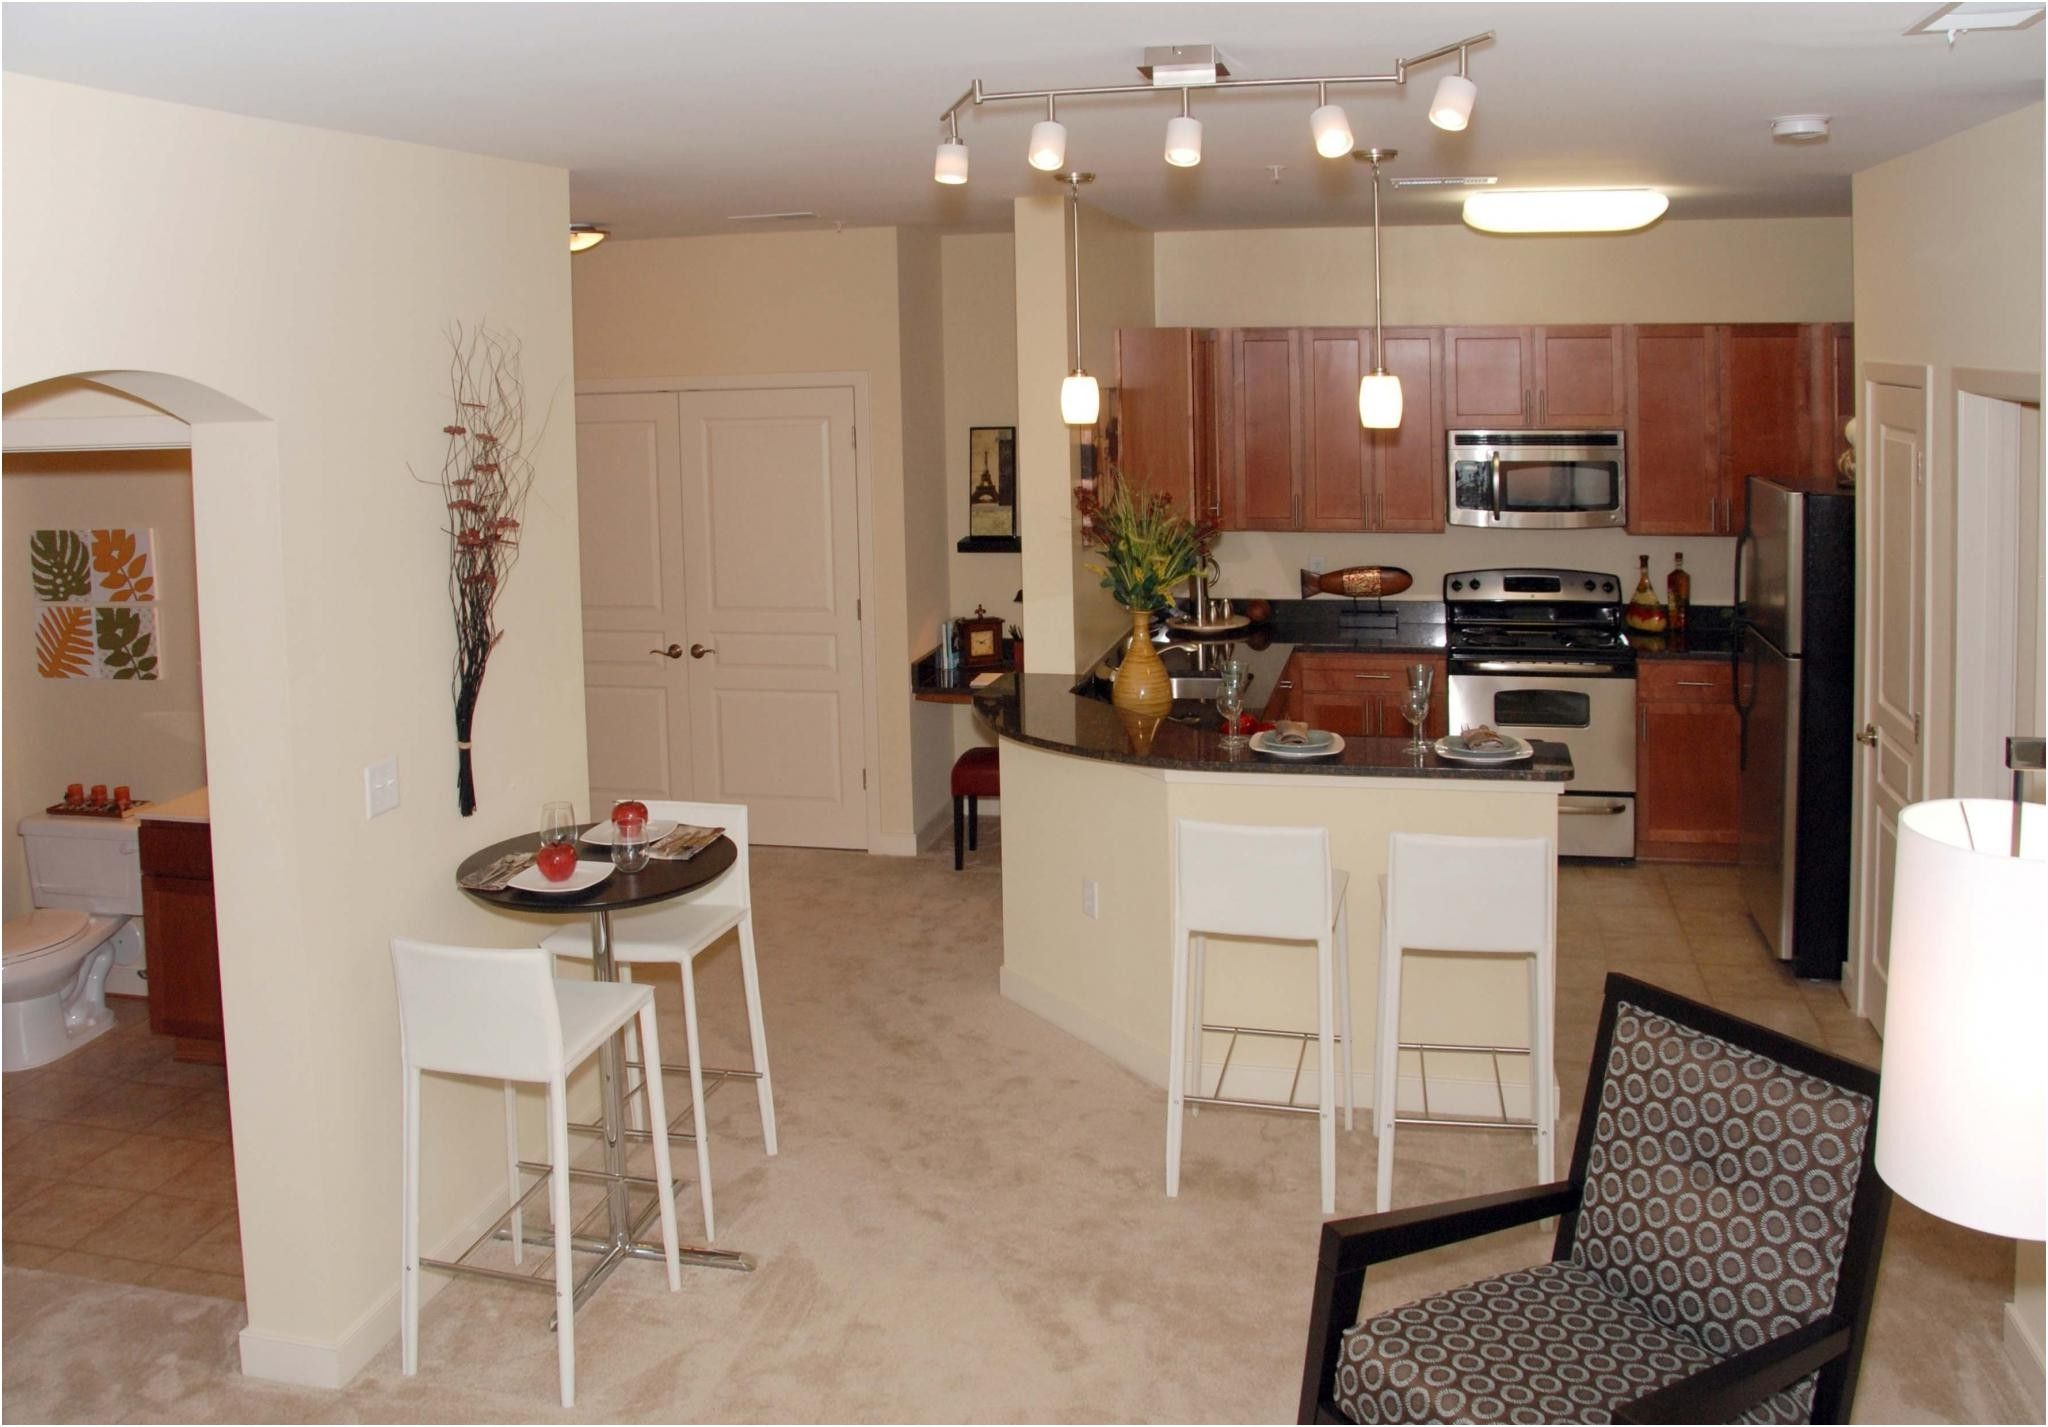 1 Bedroom Apartments For Rent In Virginia Beach Va The Cascades From Rent  House Virginia Beach